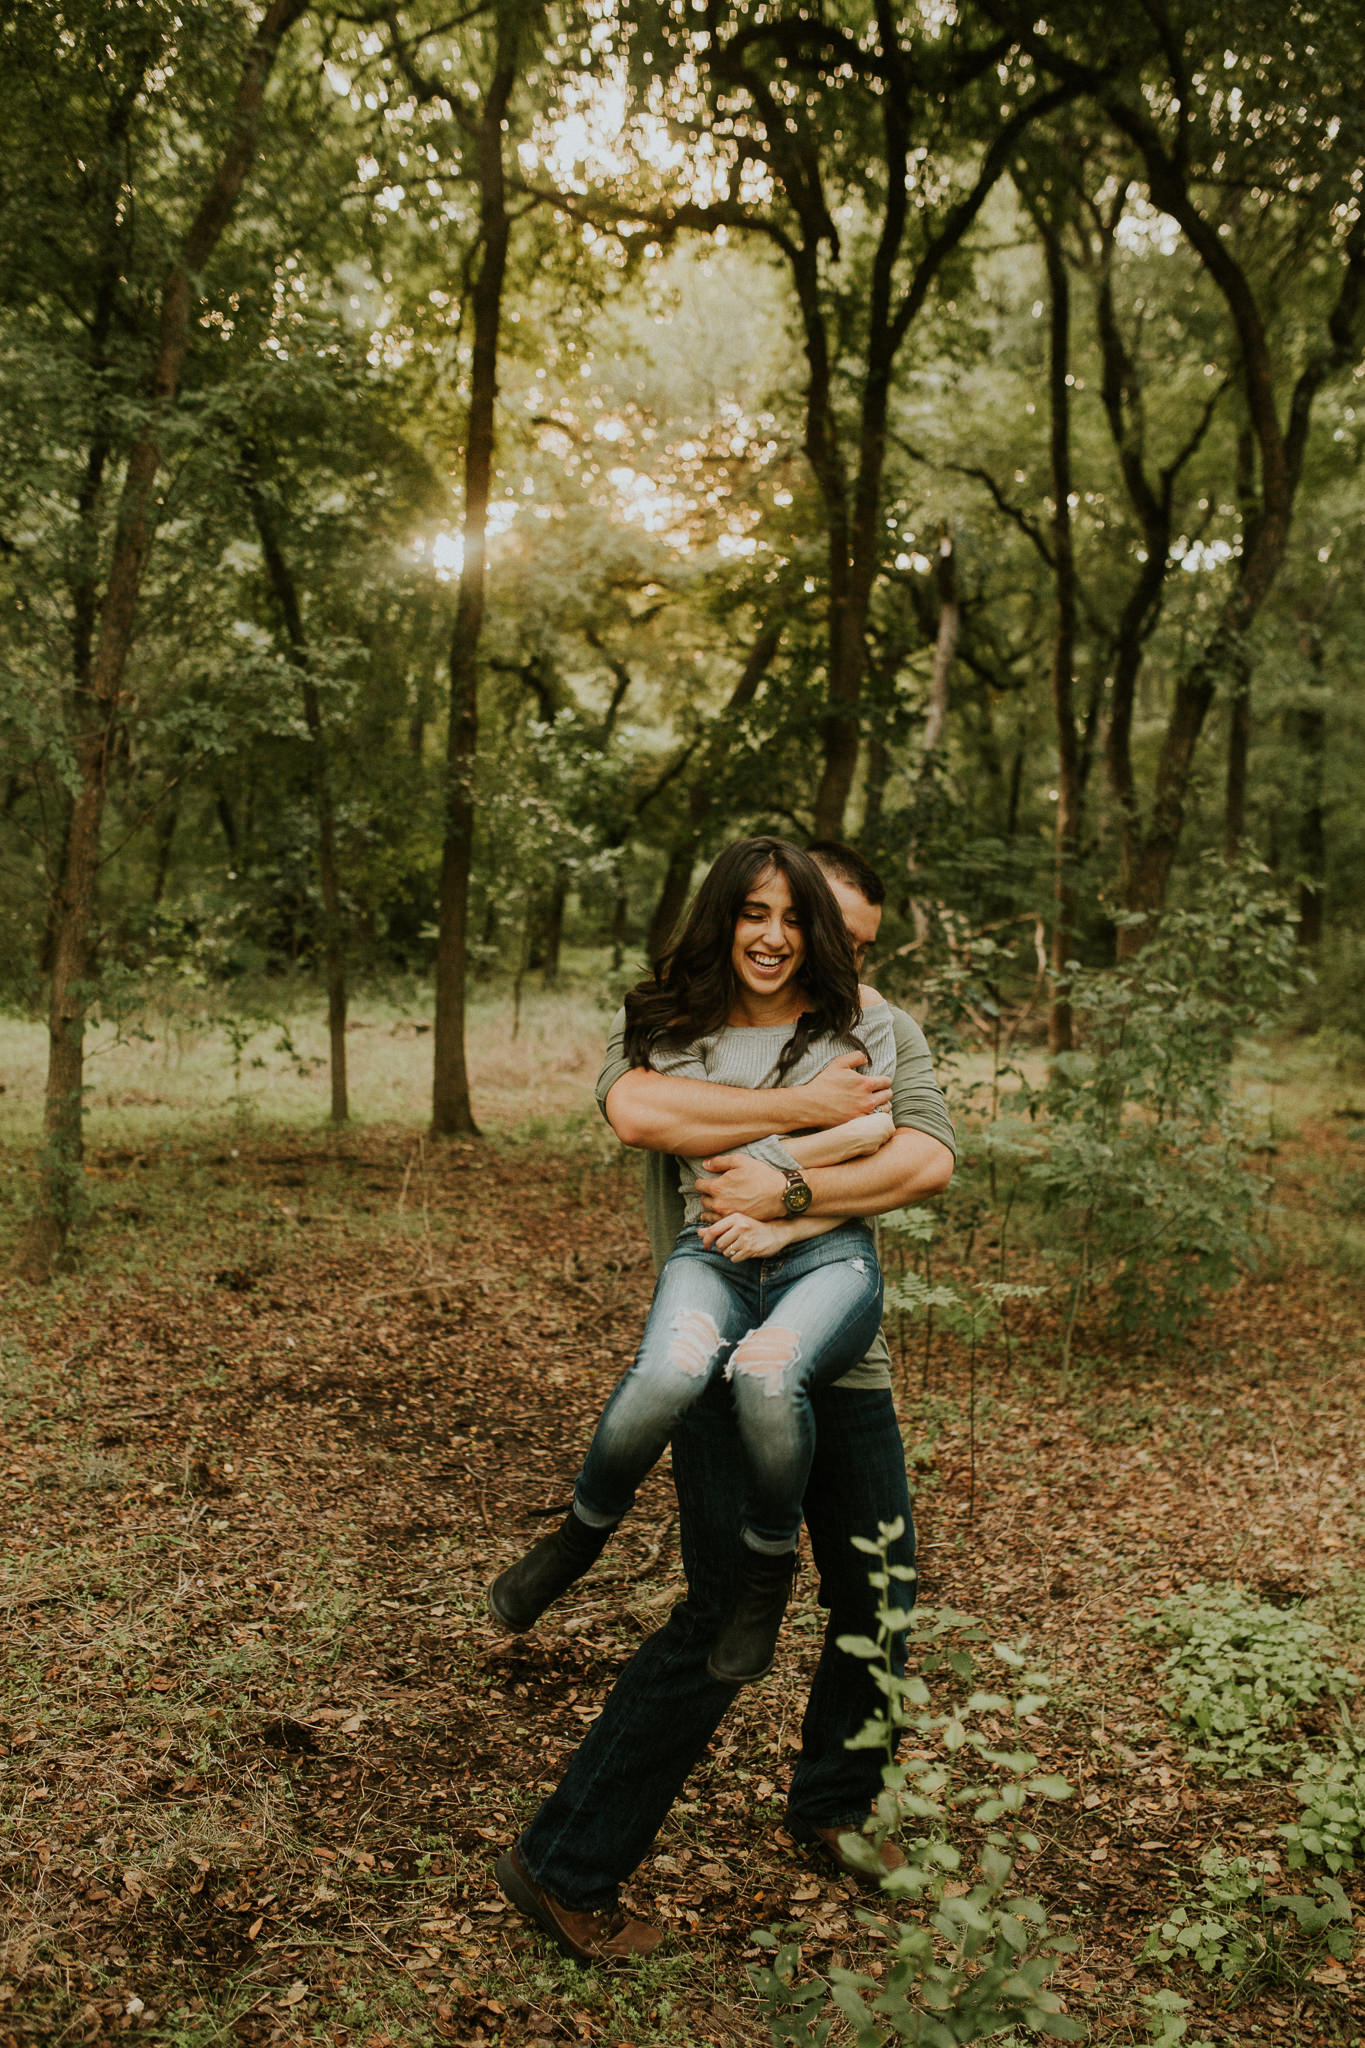 san antonio engagement photography in the woods at golden hour